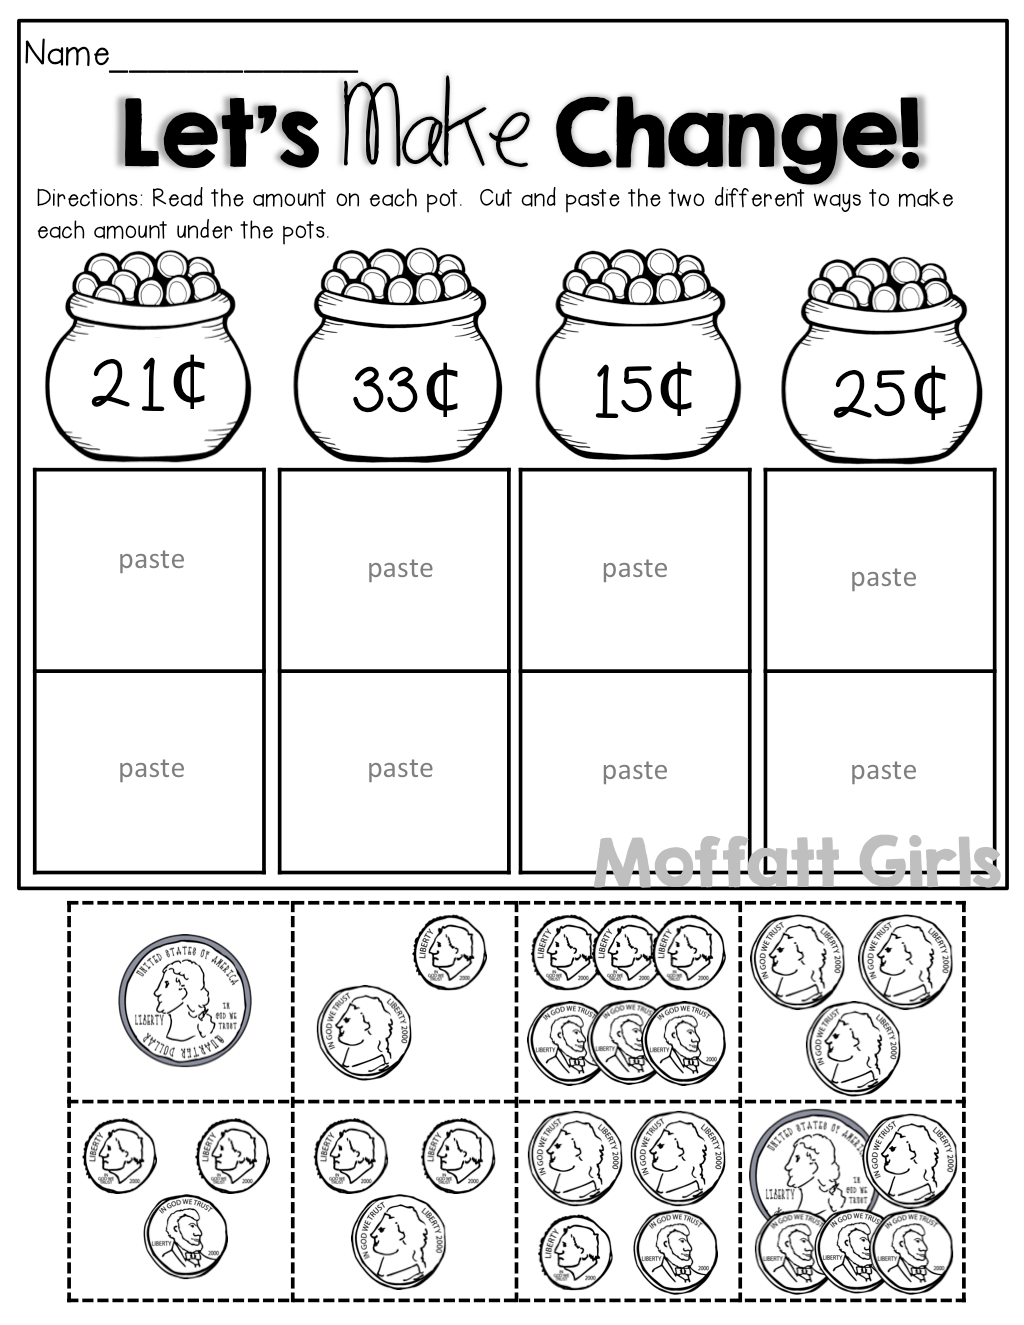 Count The Coins Cut And Paste To Make Change 2 Different Ways